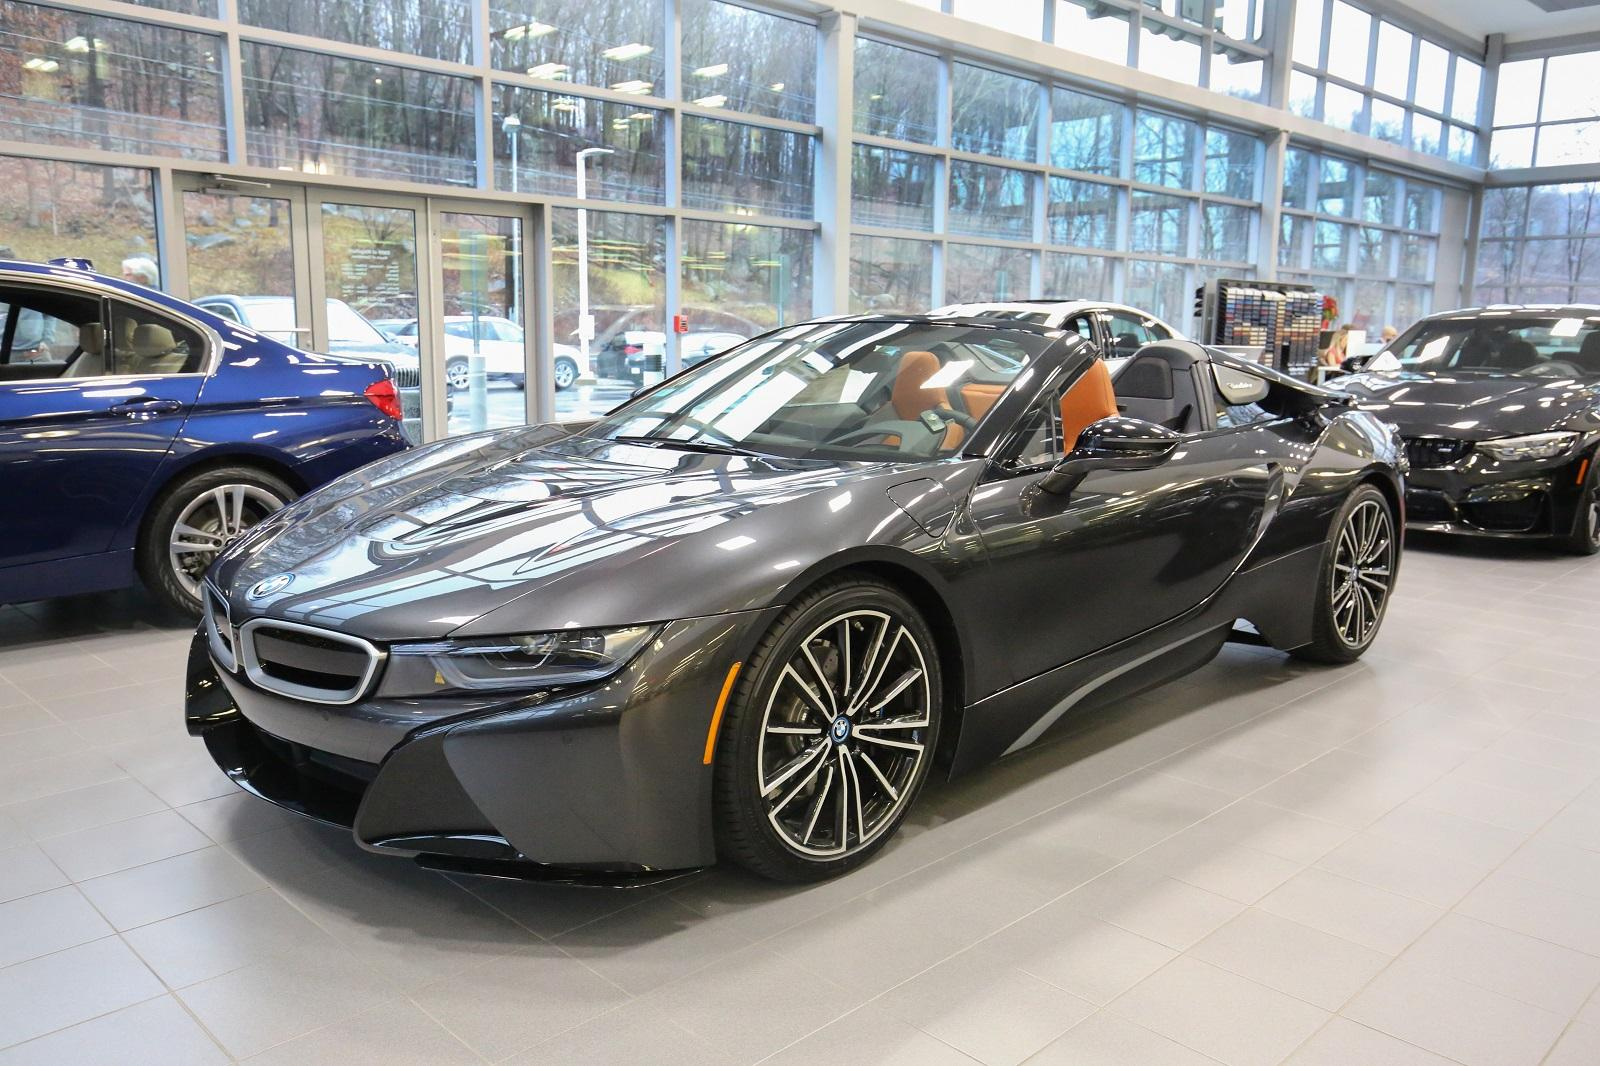 New 2019 Bmw I8 Convertible In Ridgefield 19280 Bmw Of Ridgefield